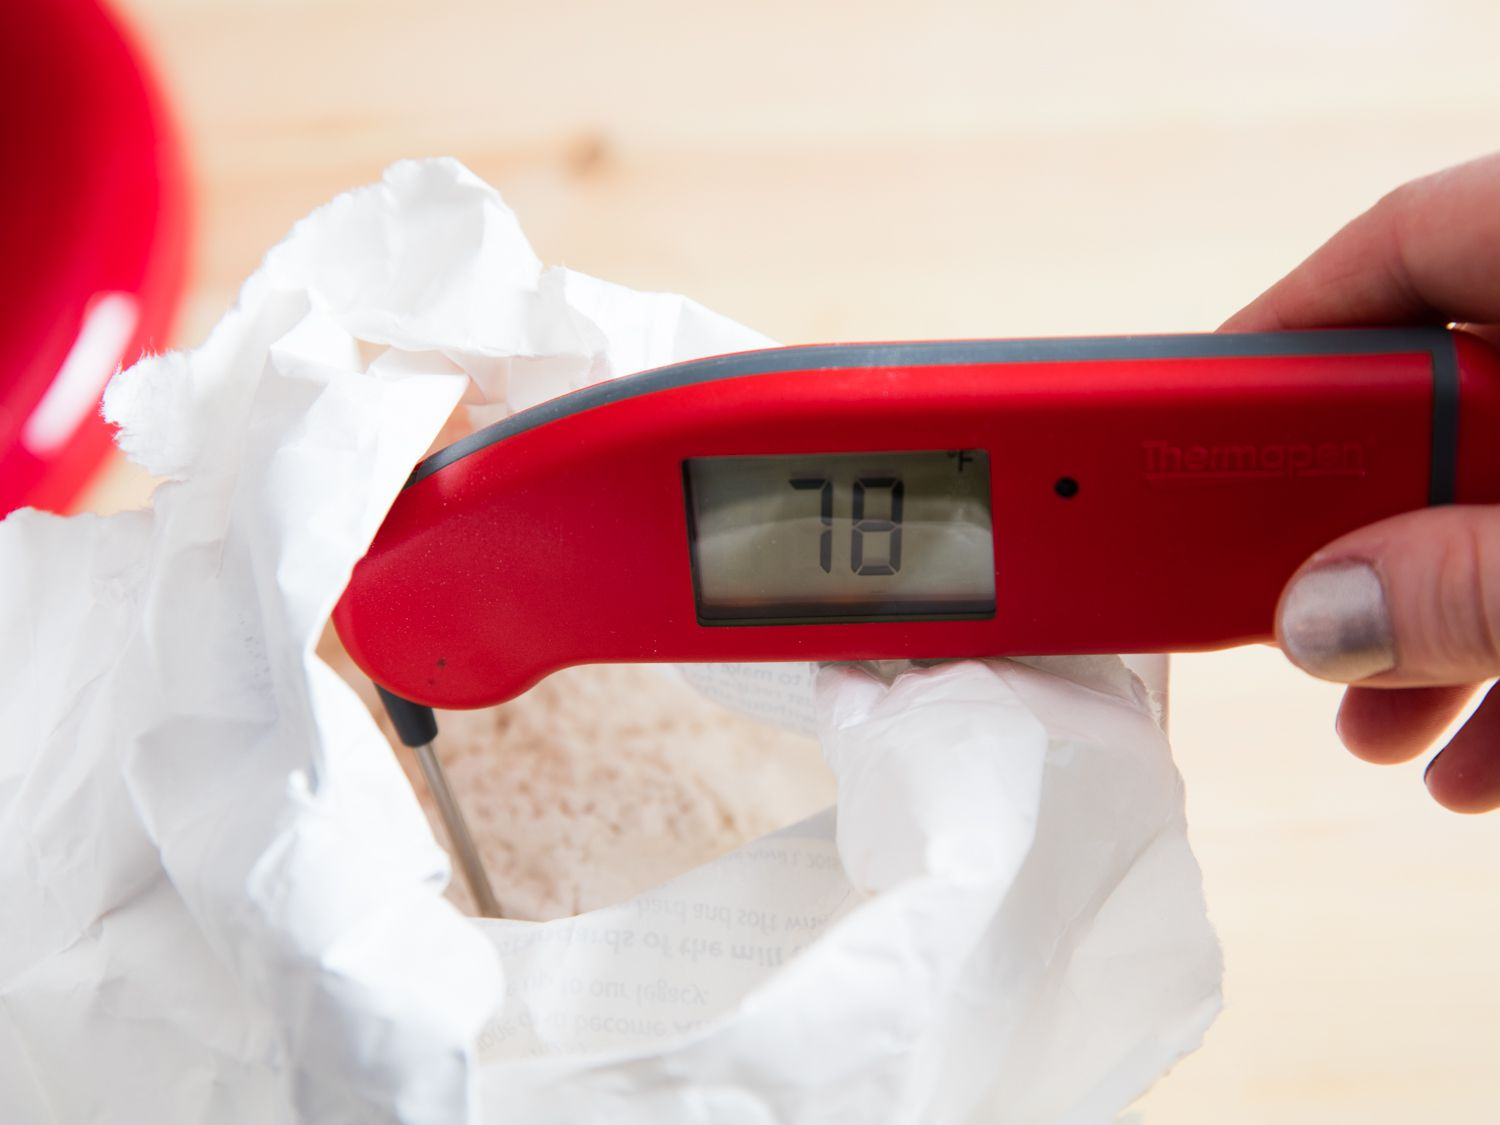 A thermometer in an open bag of flour, registering 78 degrees Fahrenheit